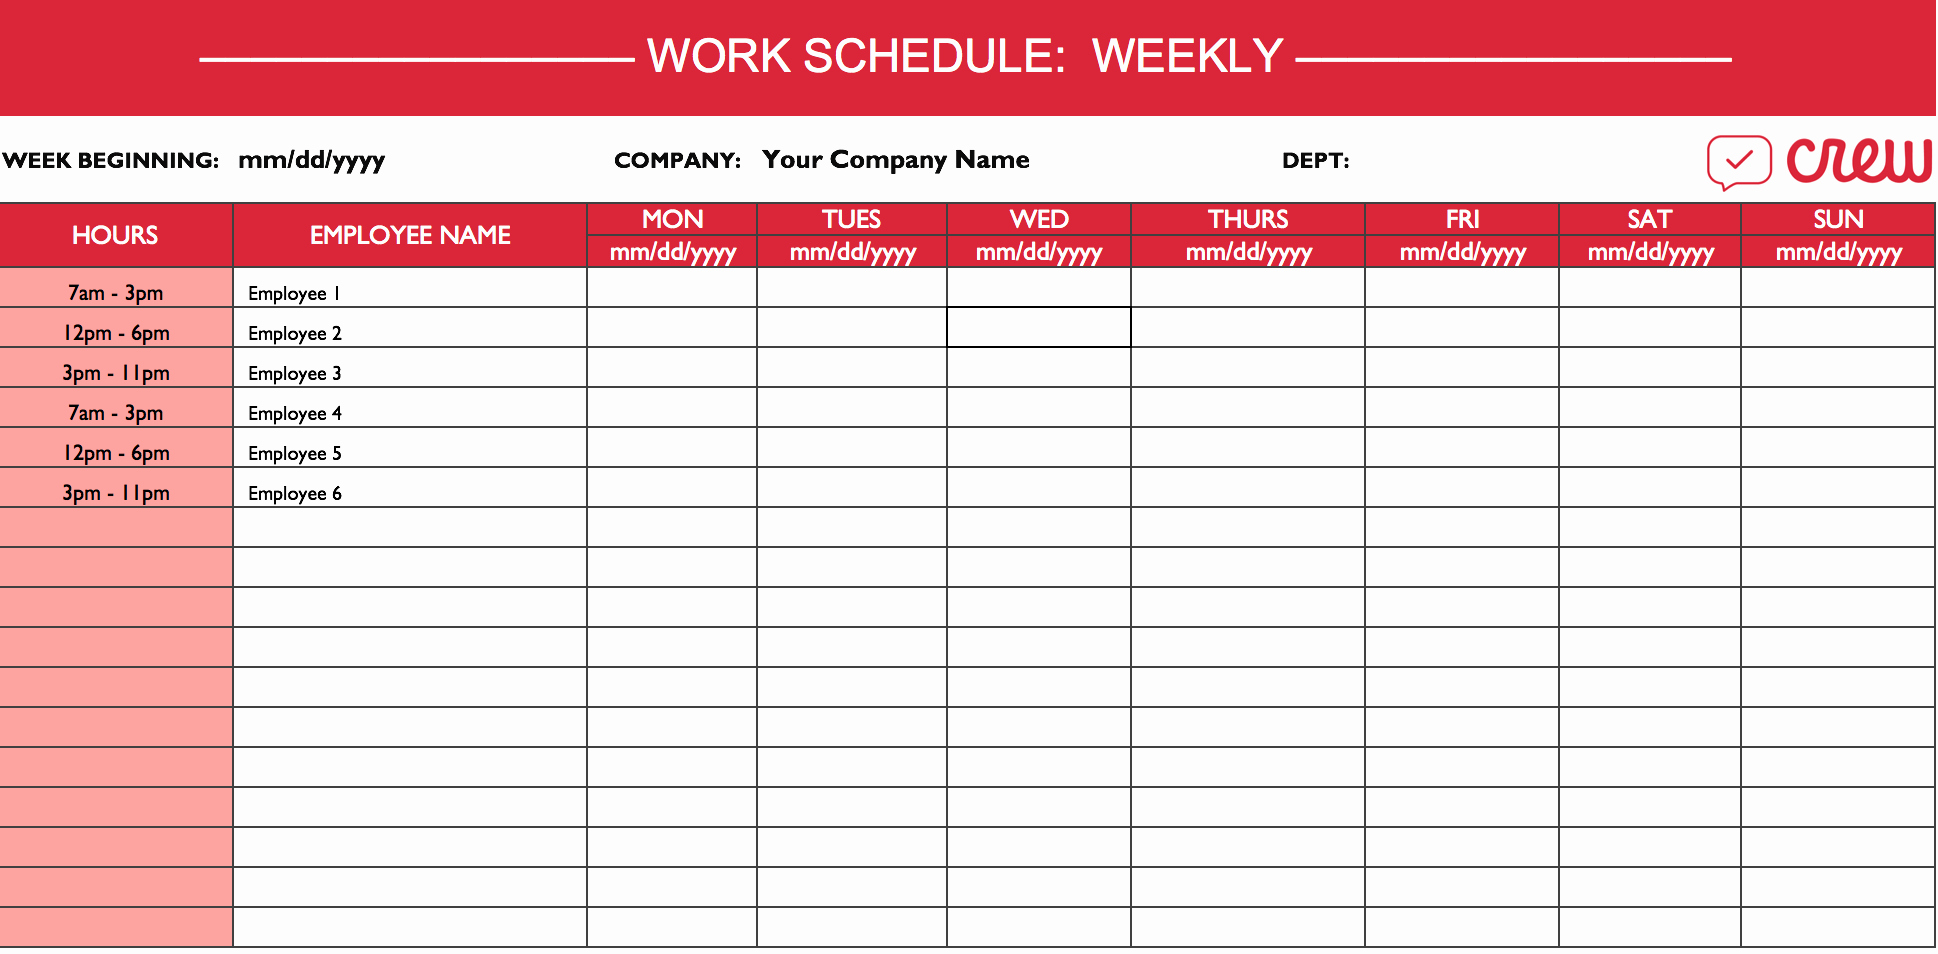 2 Week Schedule Template Best Of Weekly Work Schedule Template I Crew